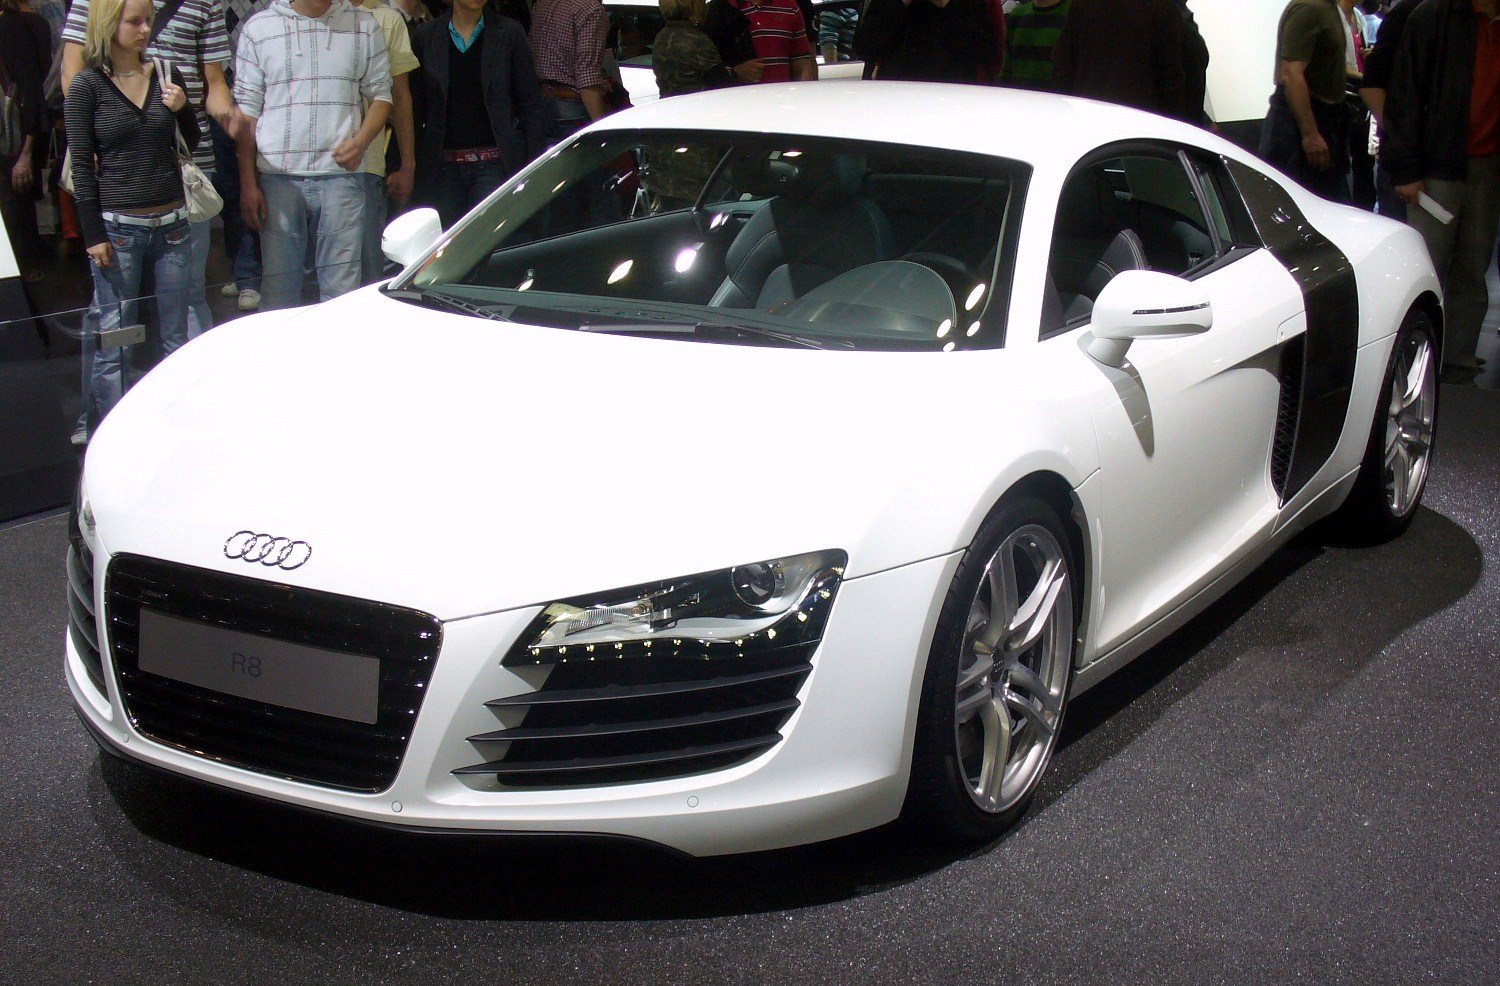 FileAudi R AMI JPG Wikimedia Commons - Audi 48